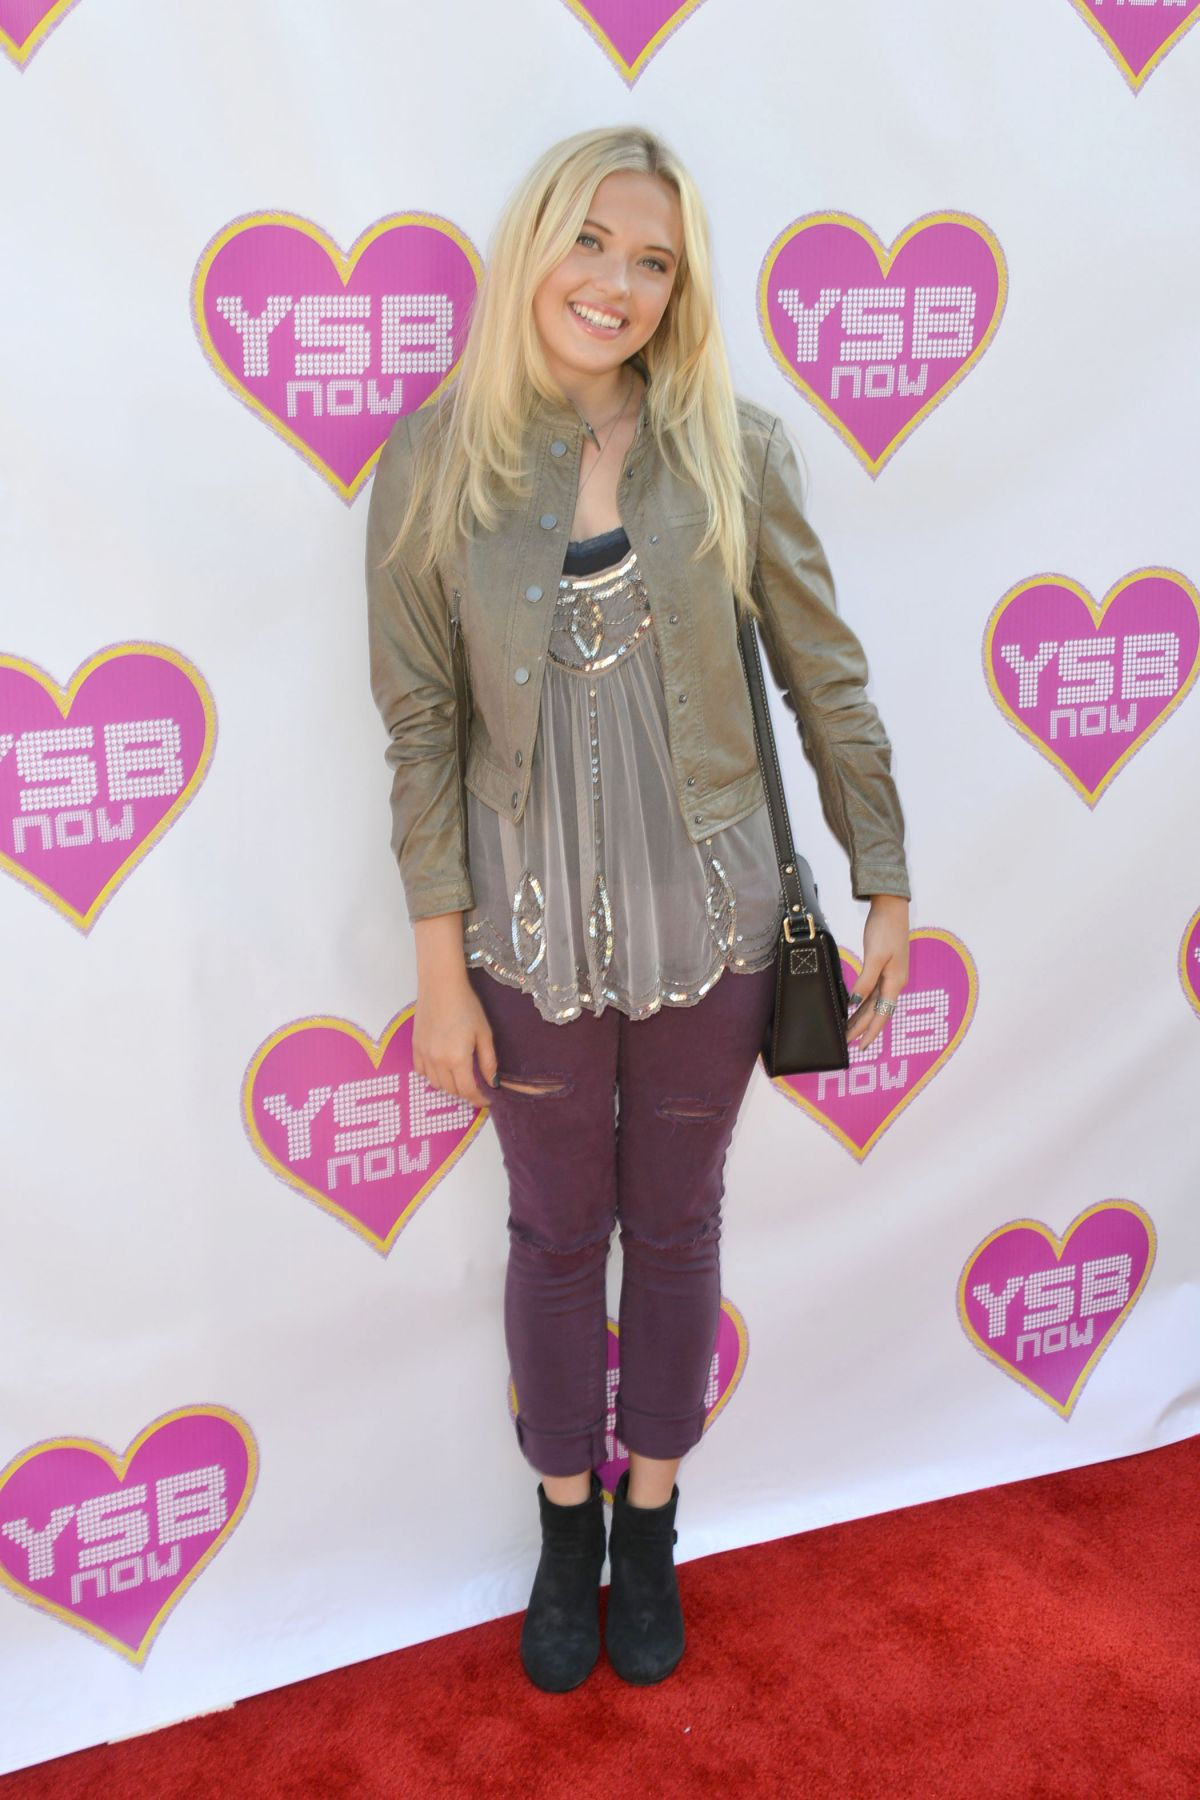 LAUREN TAYLOR at ysbnow Launch Party in Los Angeles 10/17/2015